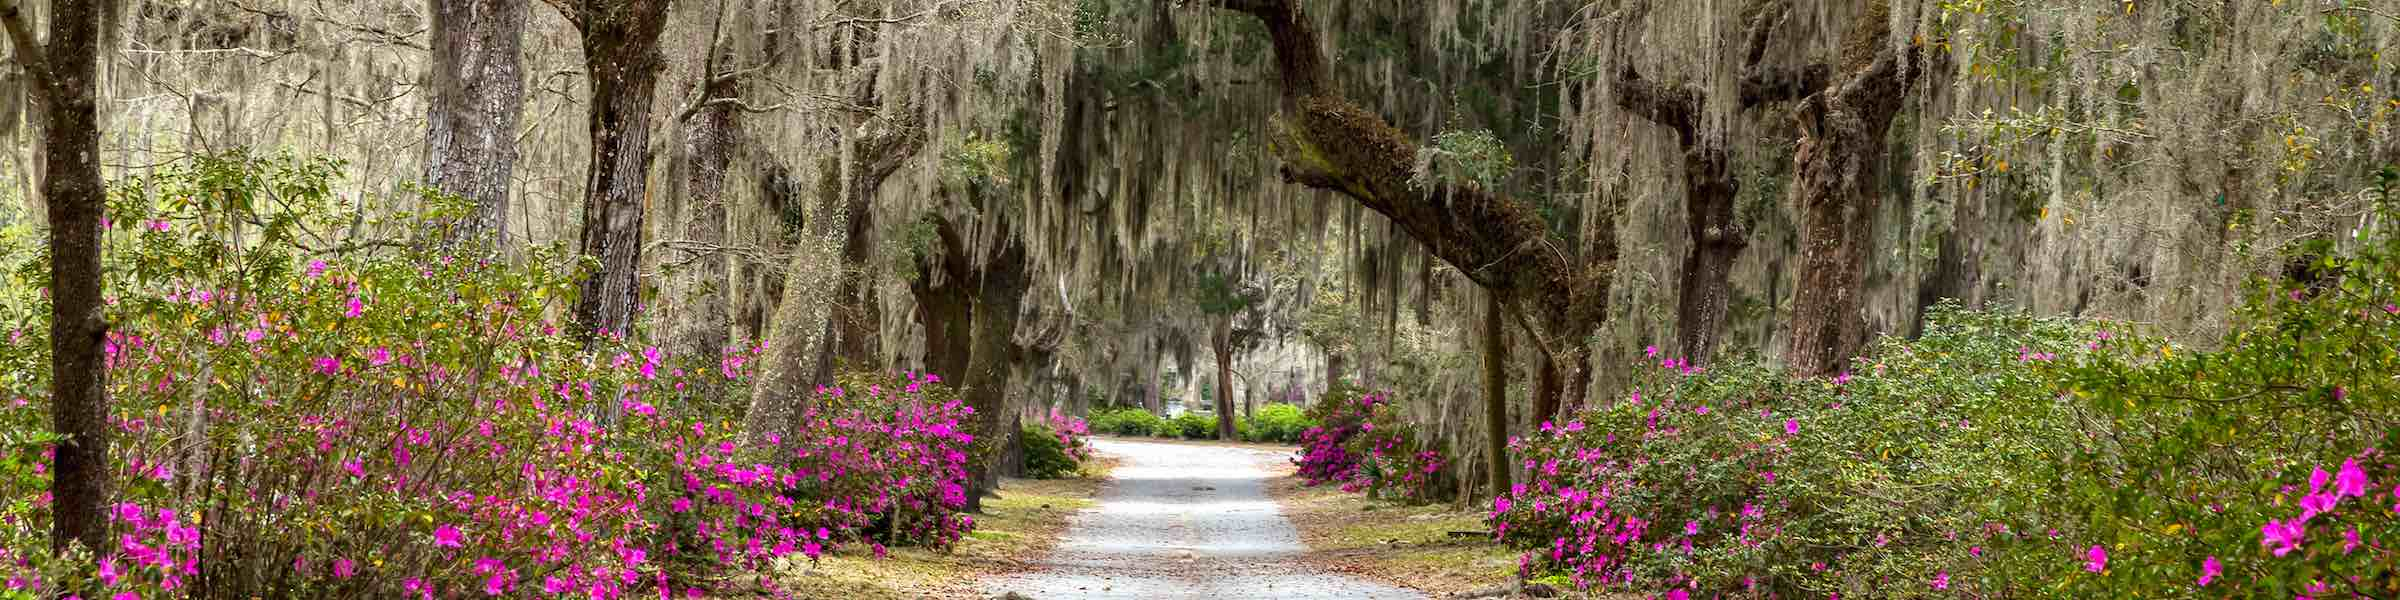 Live oaks and azaleas along a road through Bonaventure Cemetery, Savannah, GA.